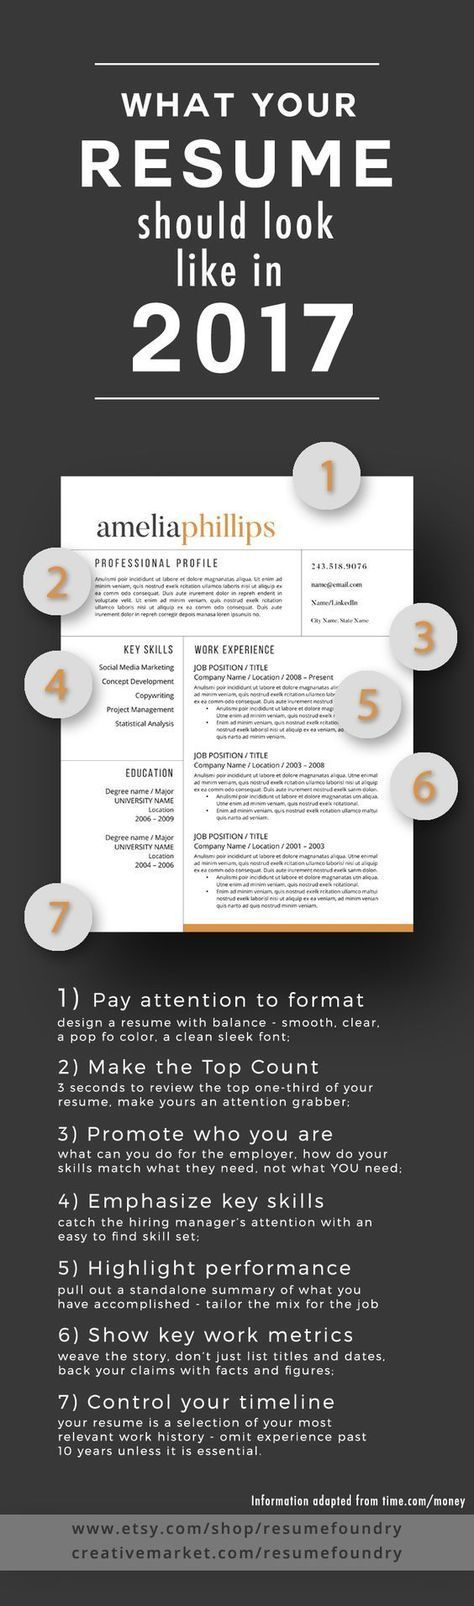 Best 25+ Cover letters ideas on Pinterest Cover letter tips - resume reviewer